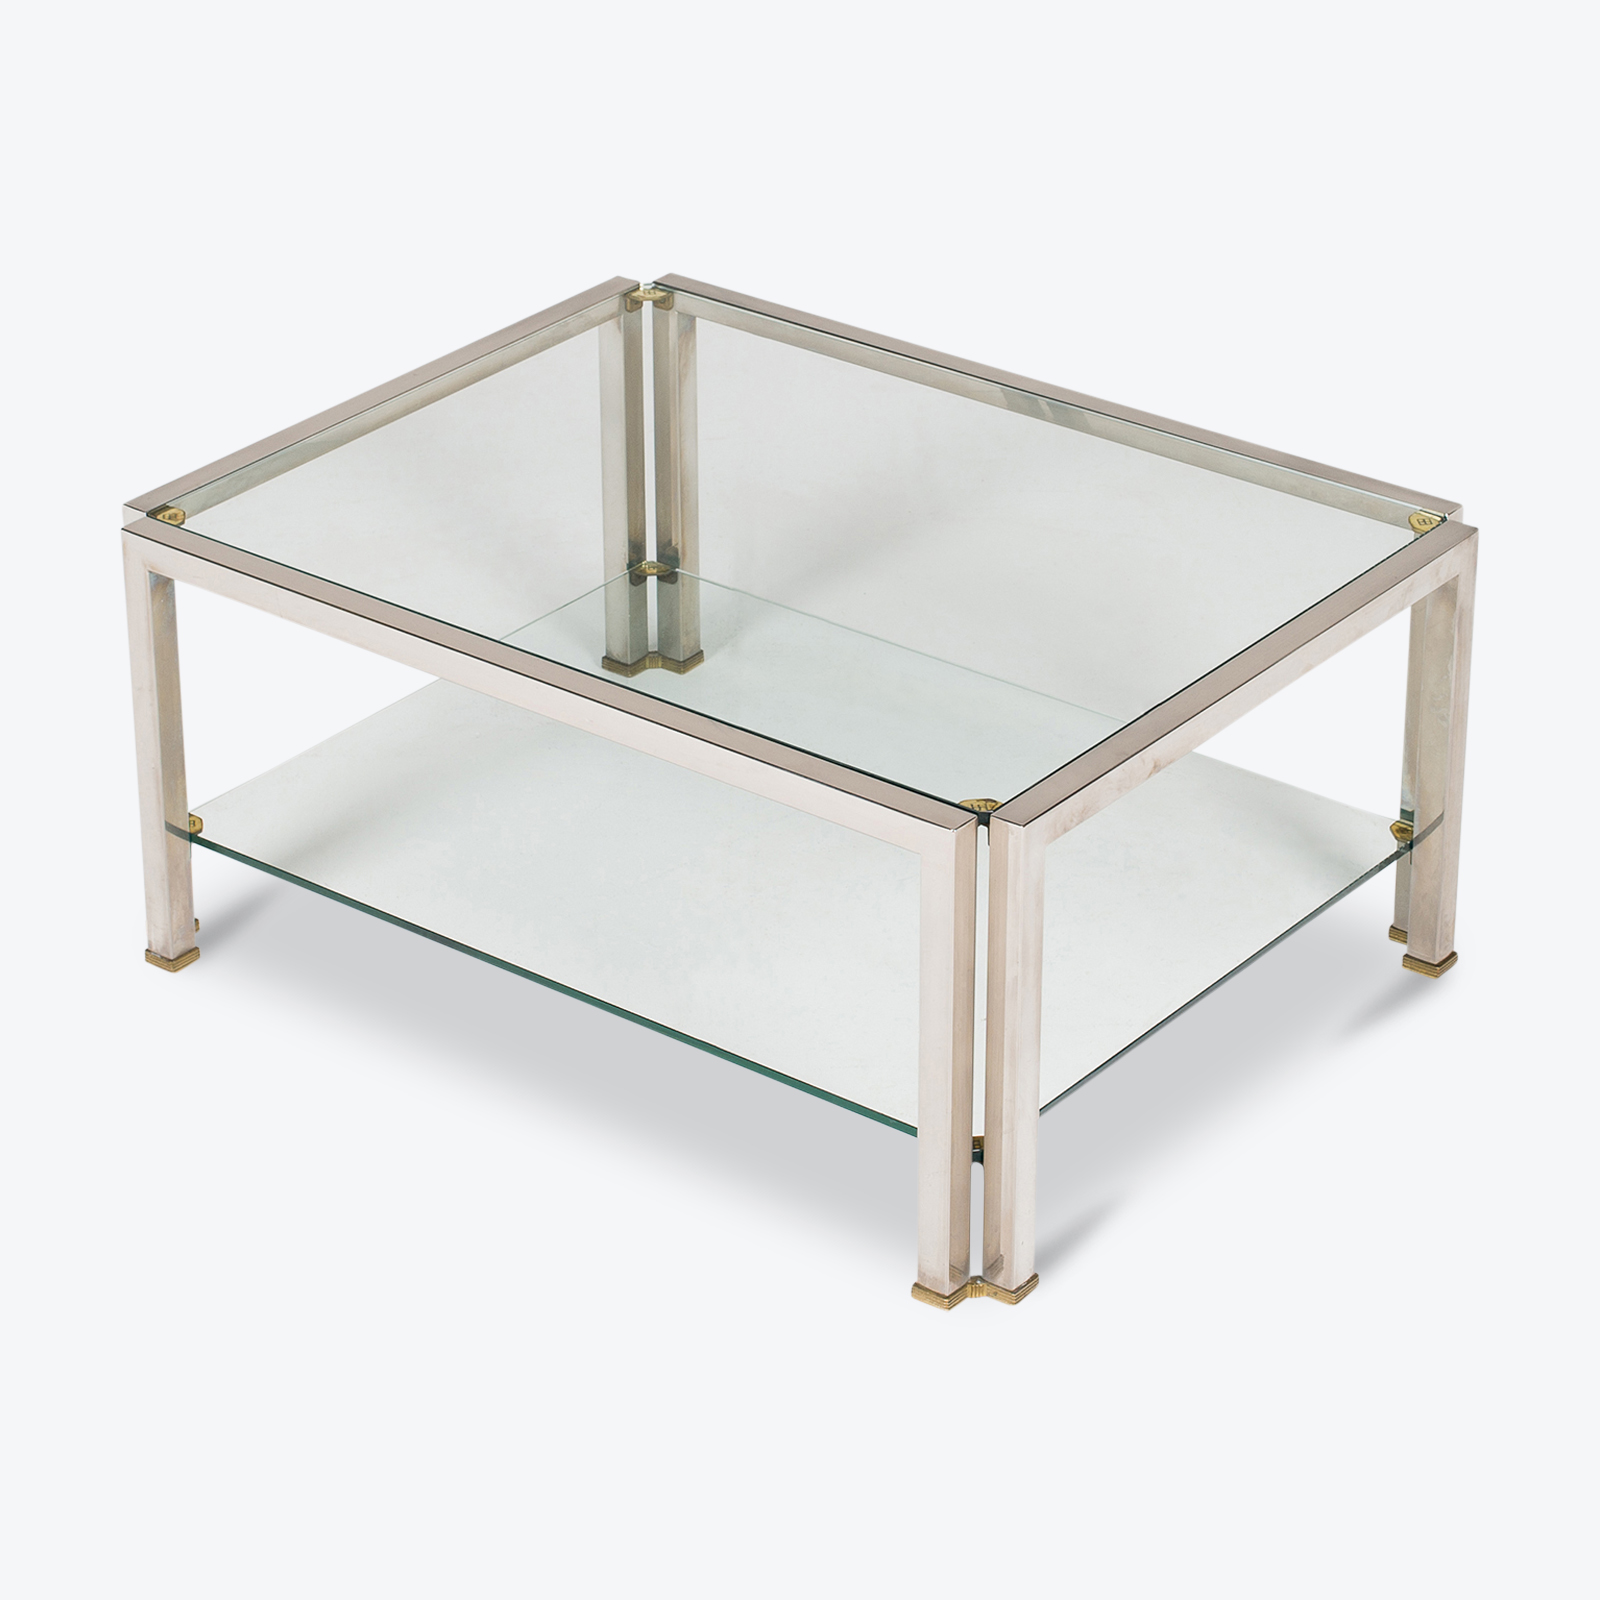 Coffee Table By Peter Ghyczy, 1970s, The Netherlands Hero